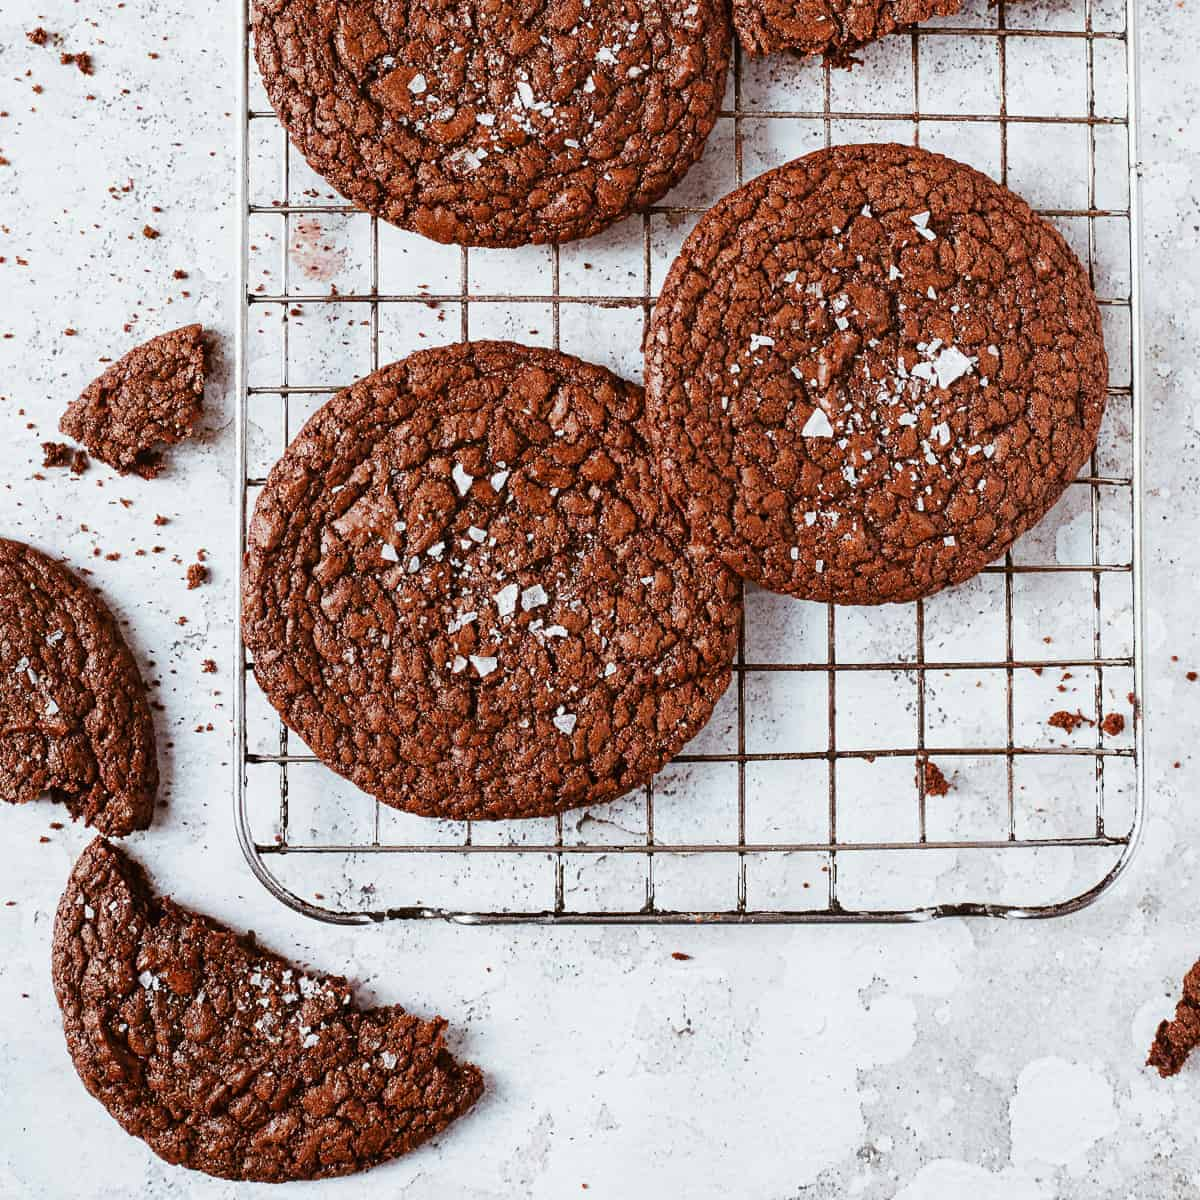 salted chocolate biscuits using Aldi ingredients.